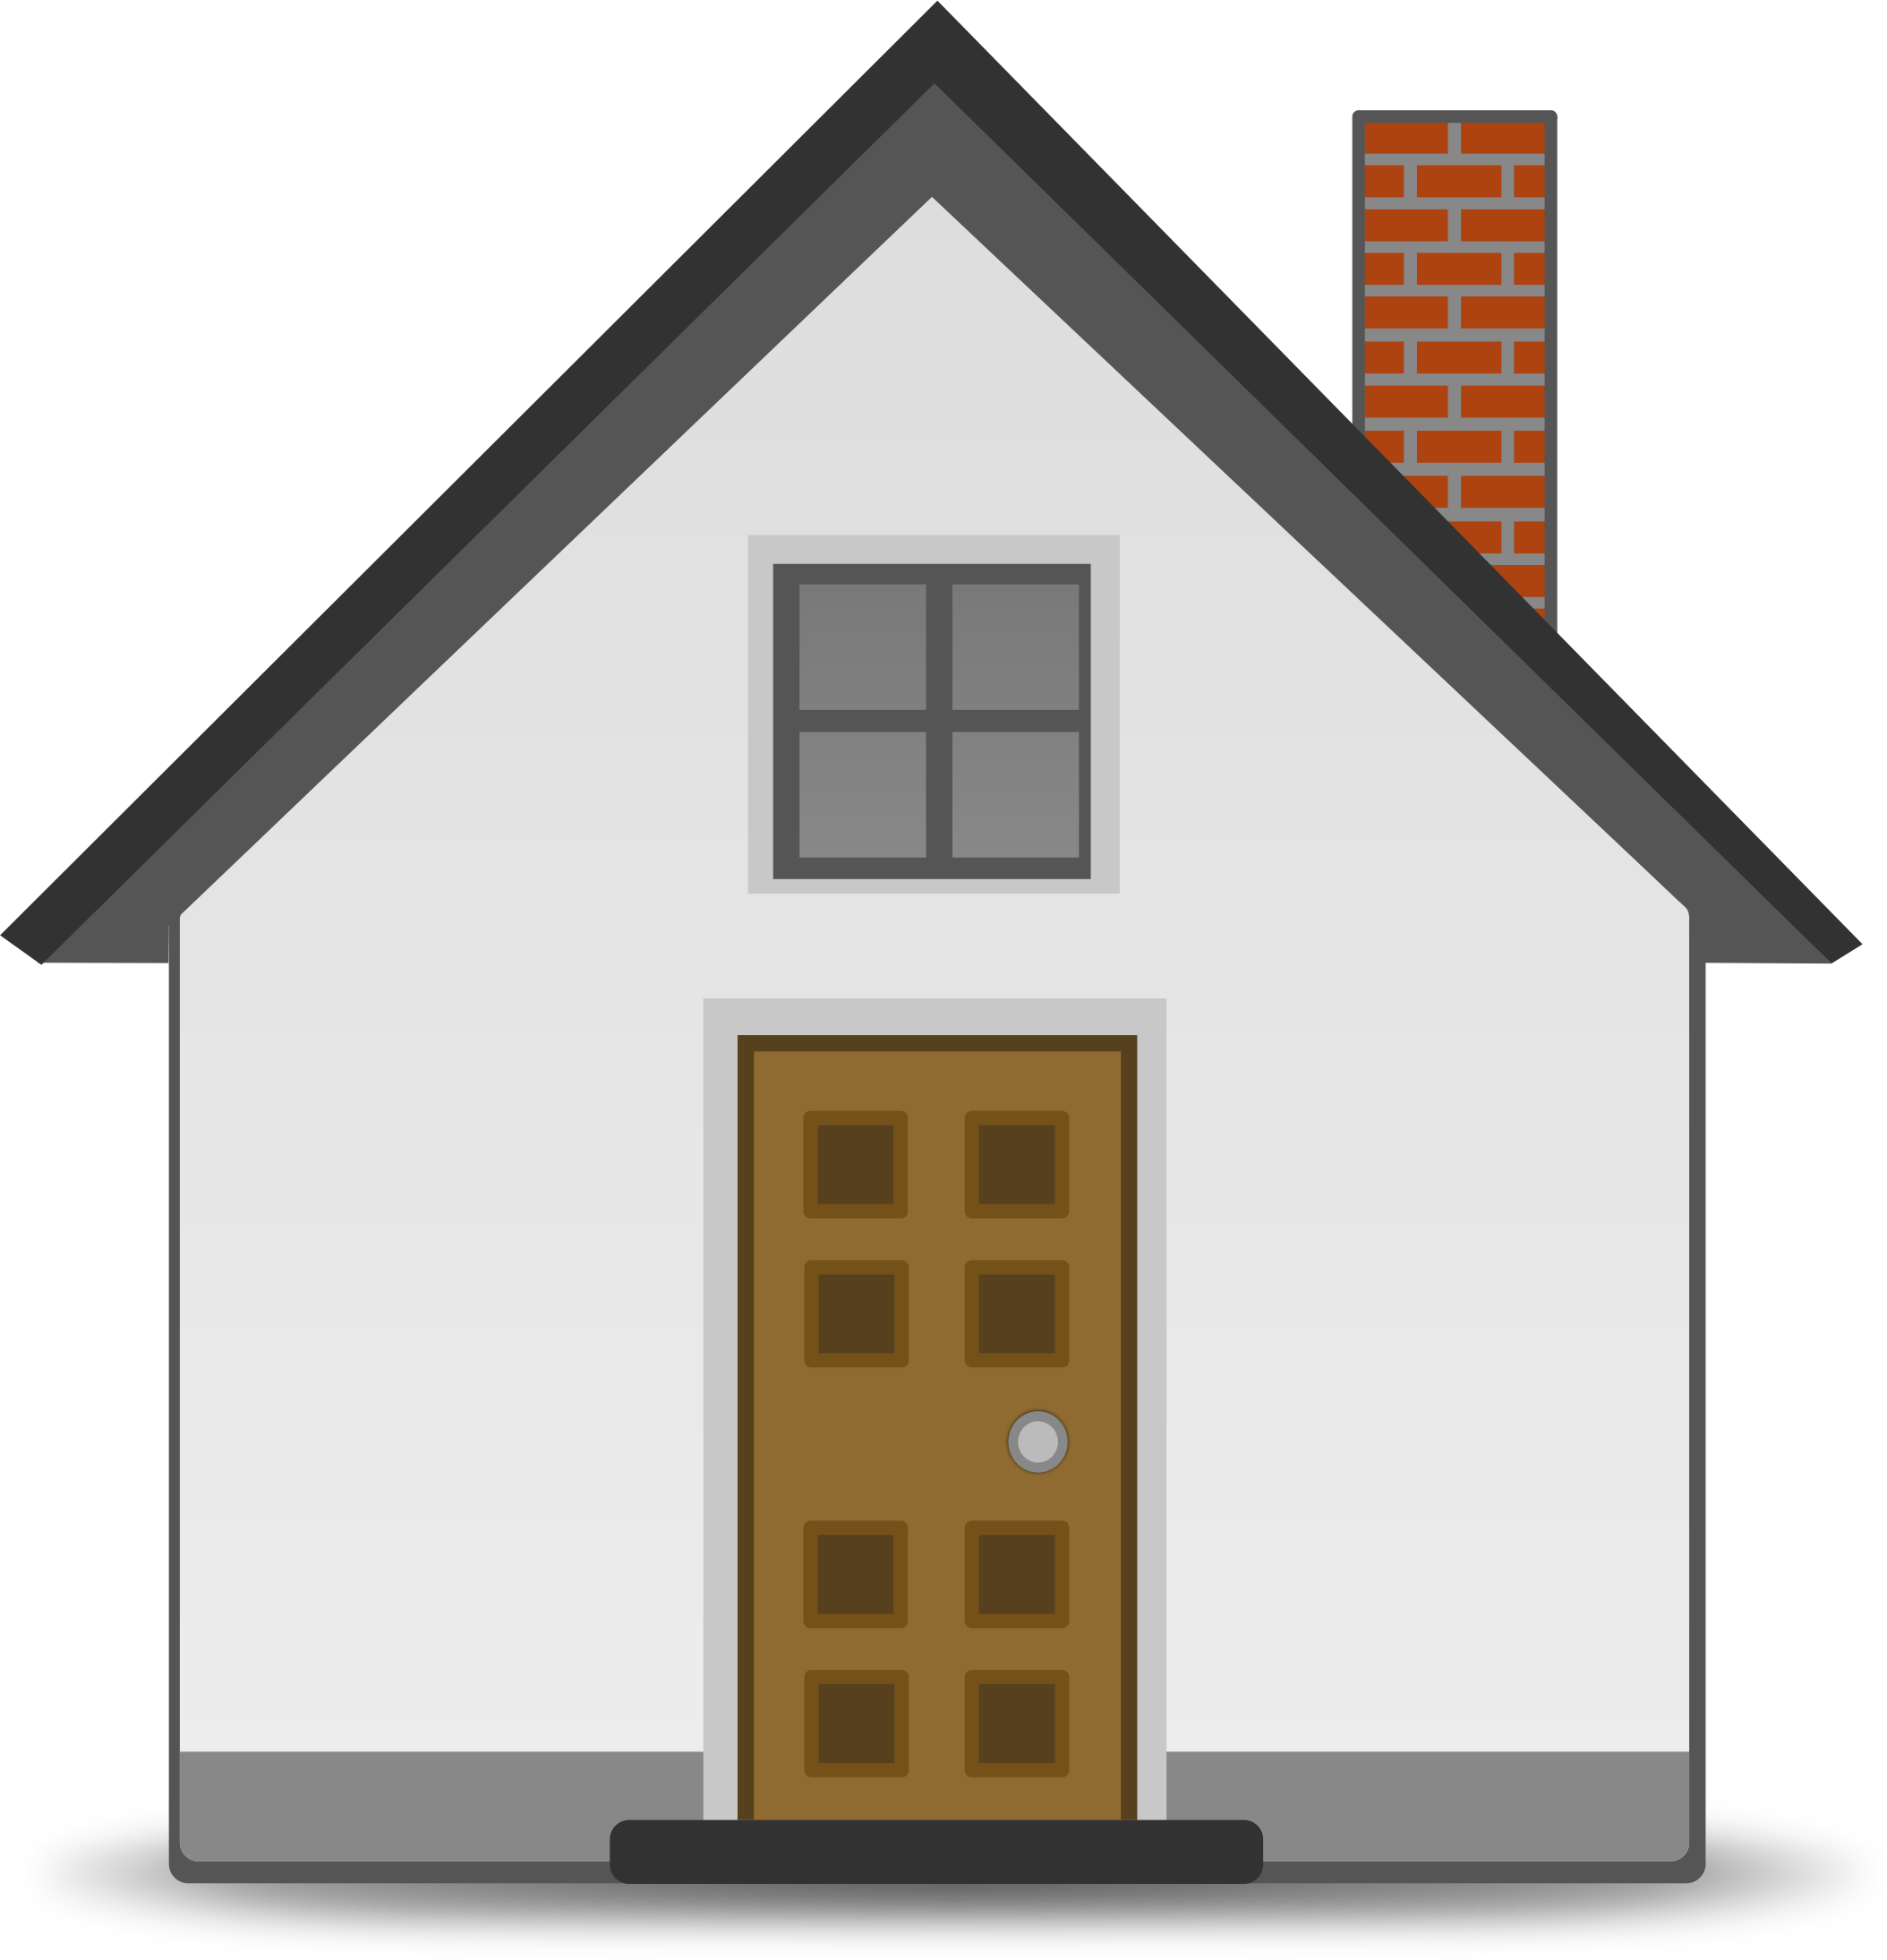 House for sale clipart free stock House clipart png clipart download #45374 - Free Icons and PNG ... free stock